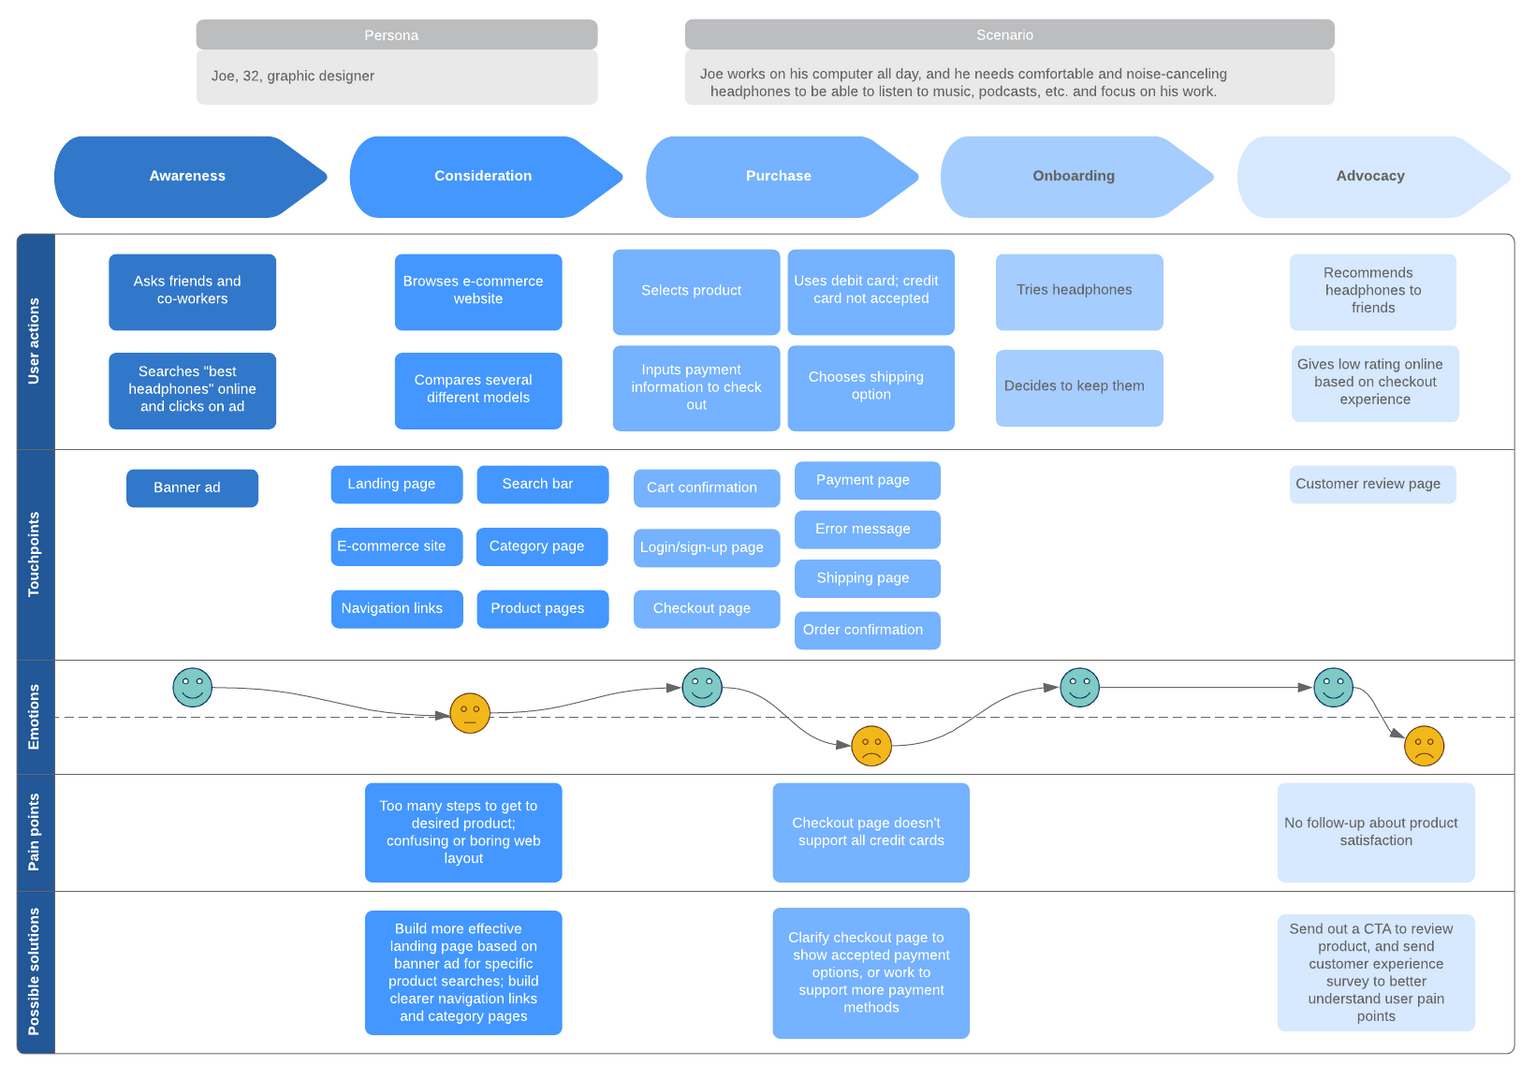 A diagram showing an example of a buyer's journey